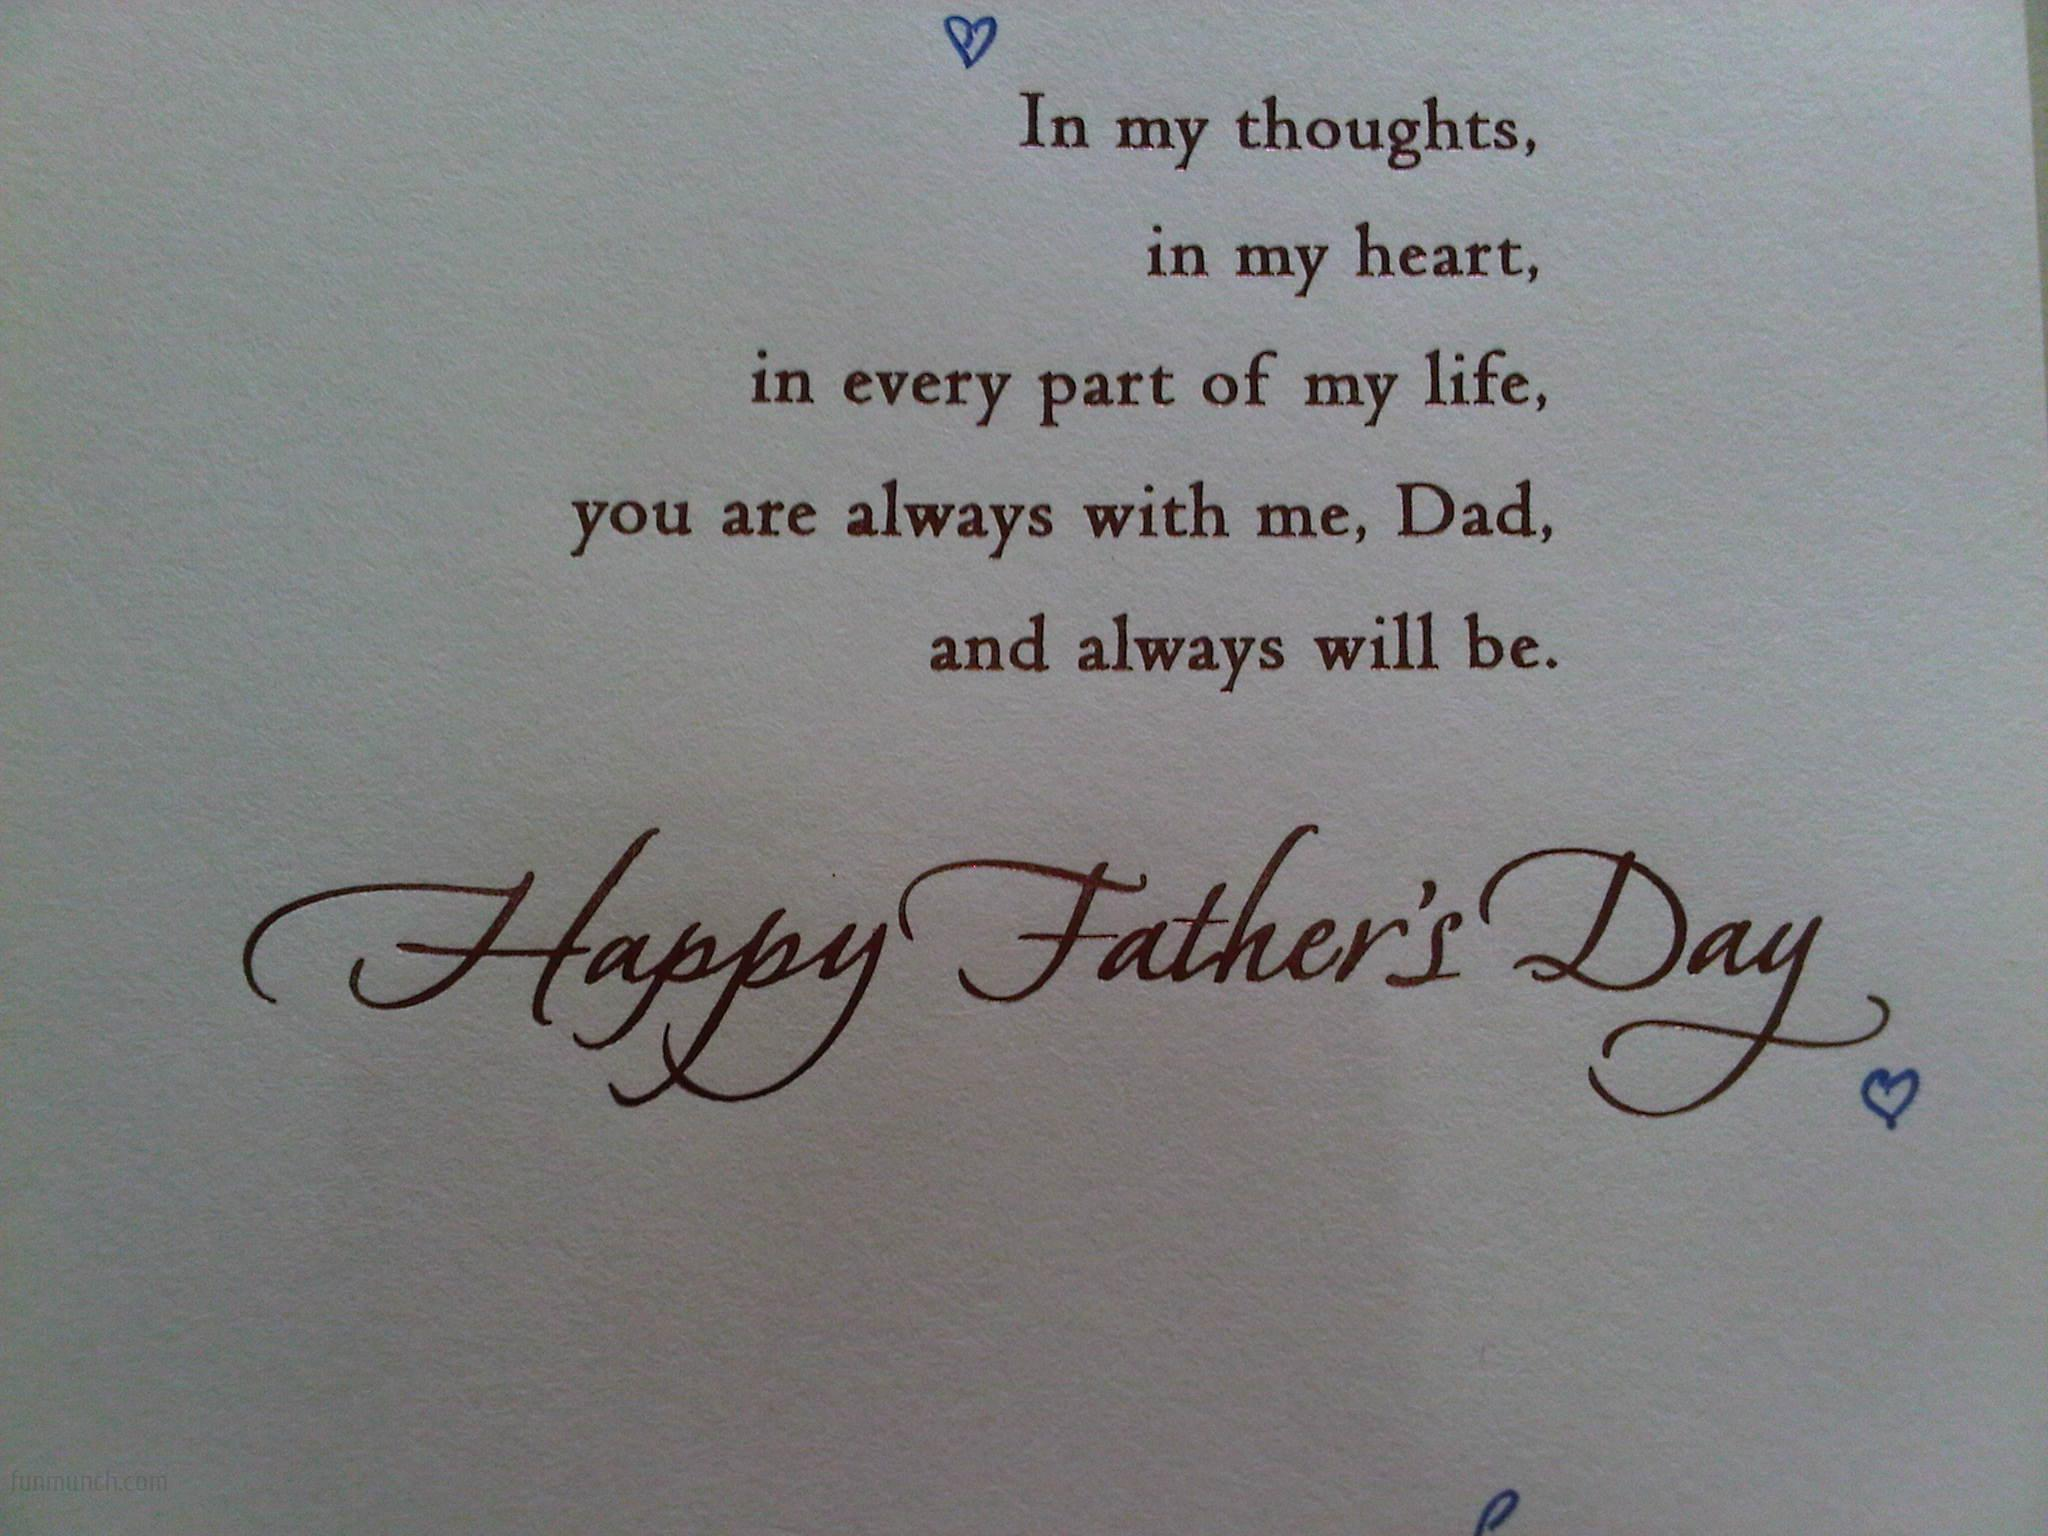 Best Father's Day Wishes